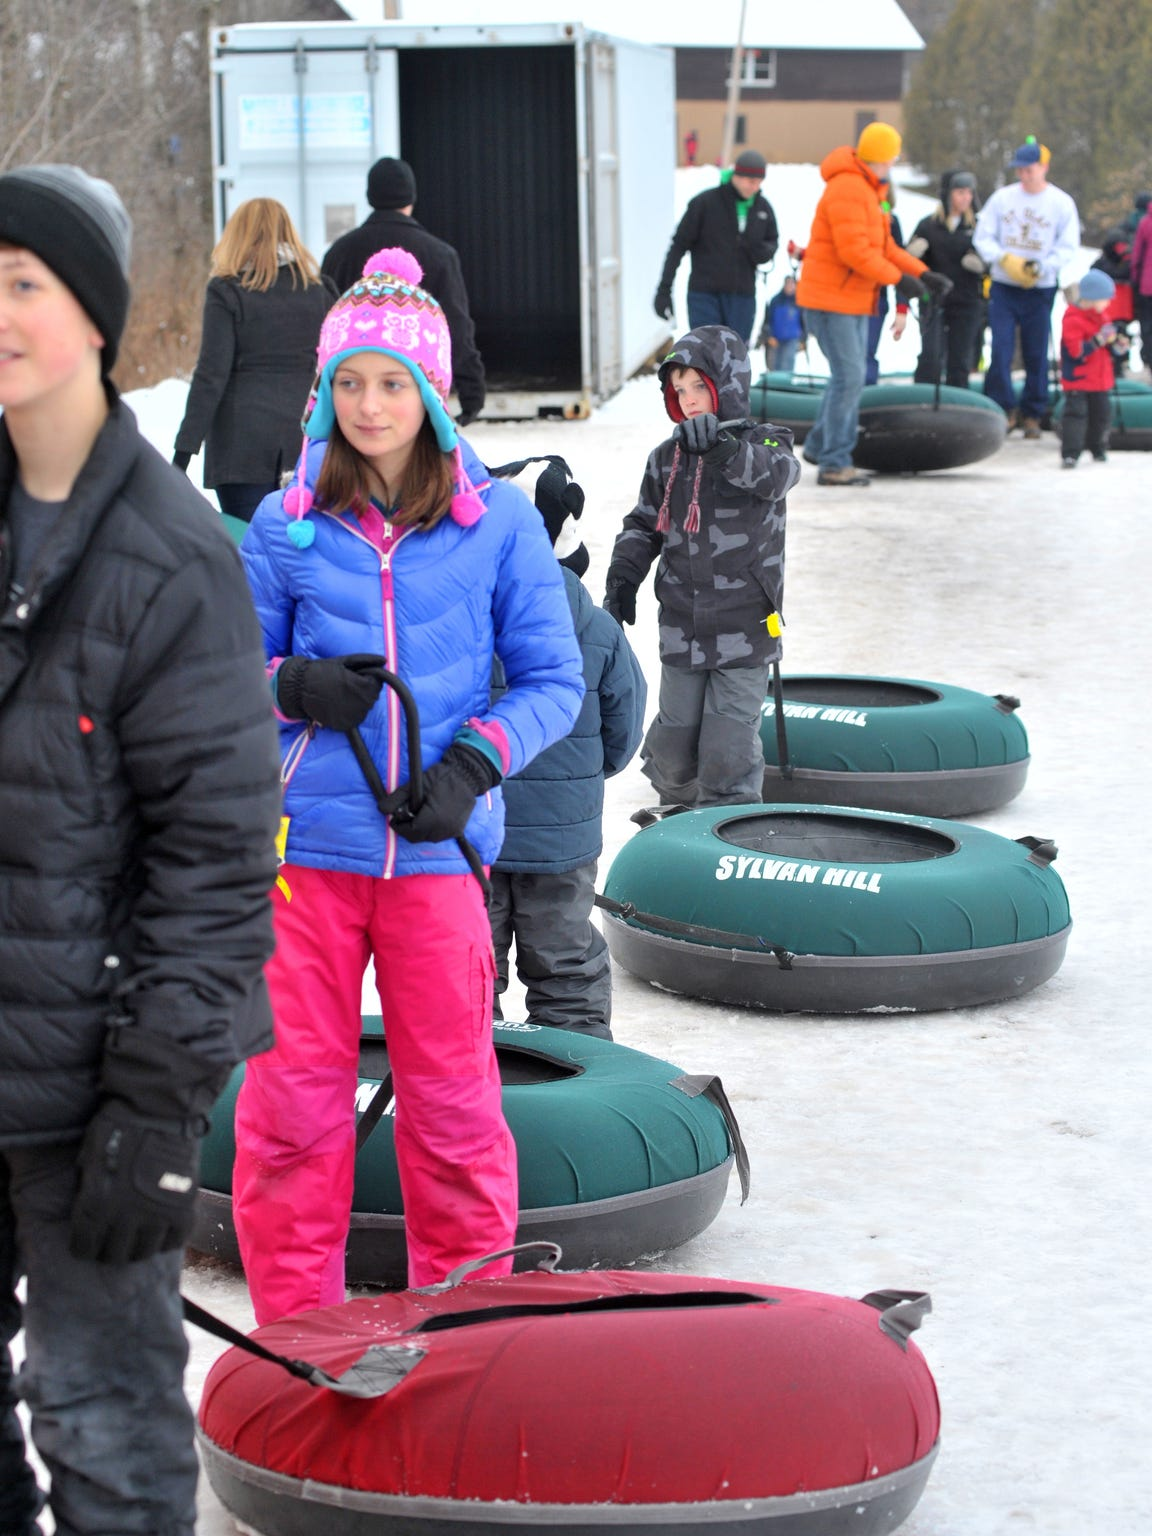 Family members and friends line up to go tubing Friday